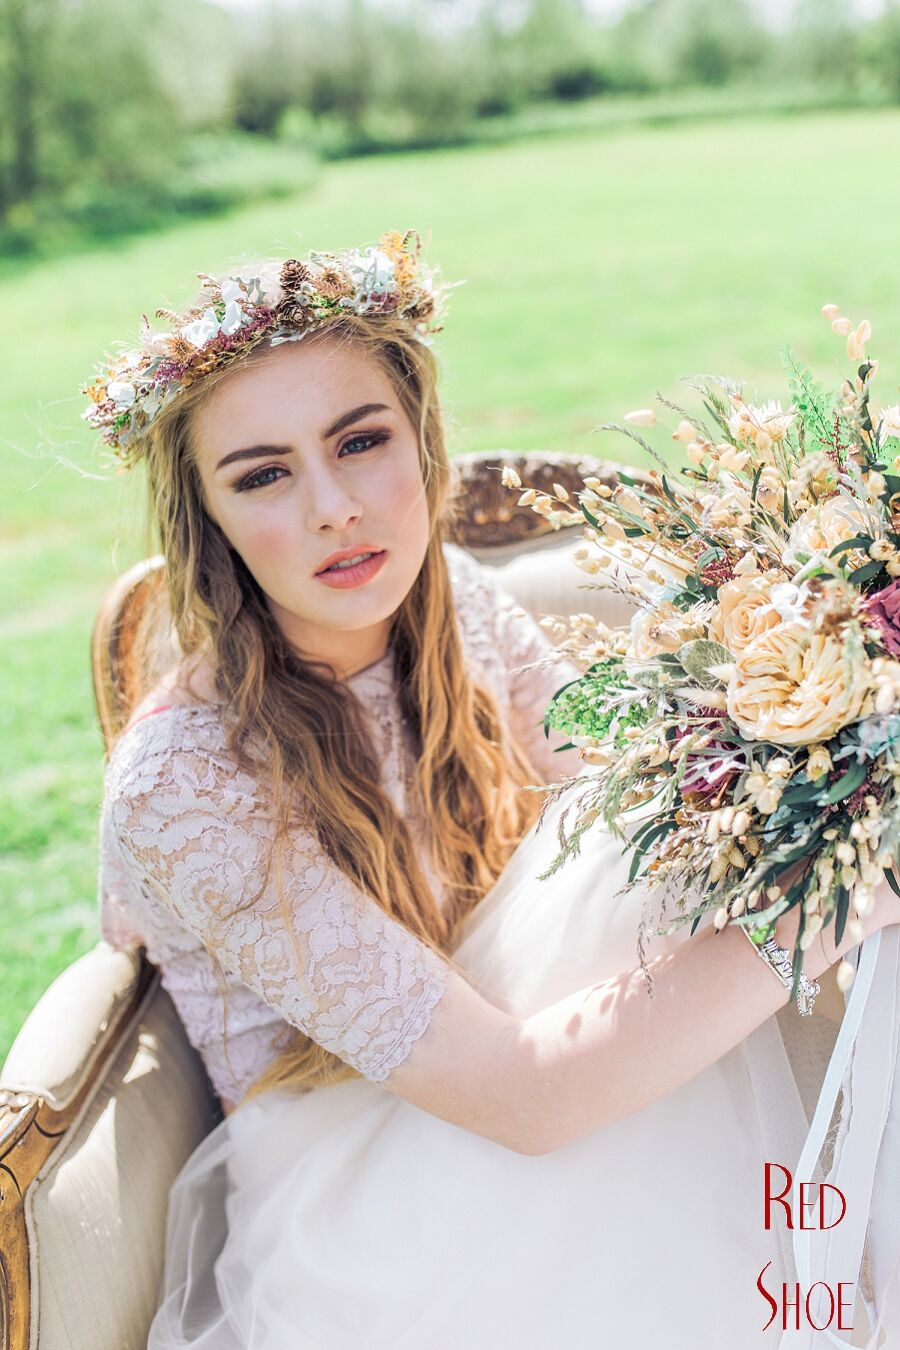 Boho bride, Glam Boho bride, Wedding inspiration, Styled wedding photo shoot, wedding ideas, wedding